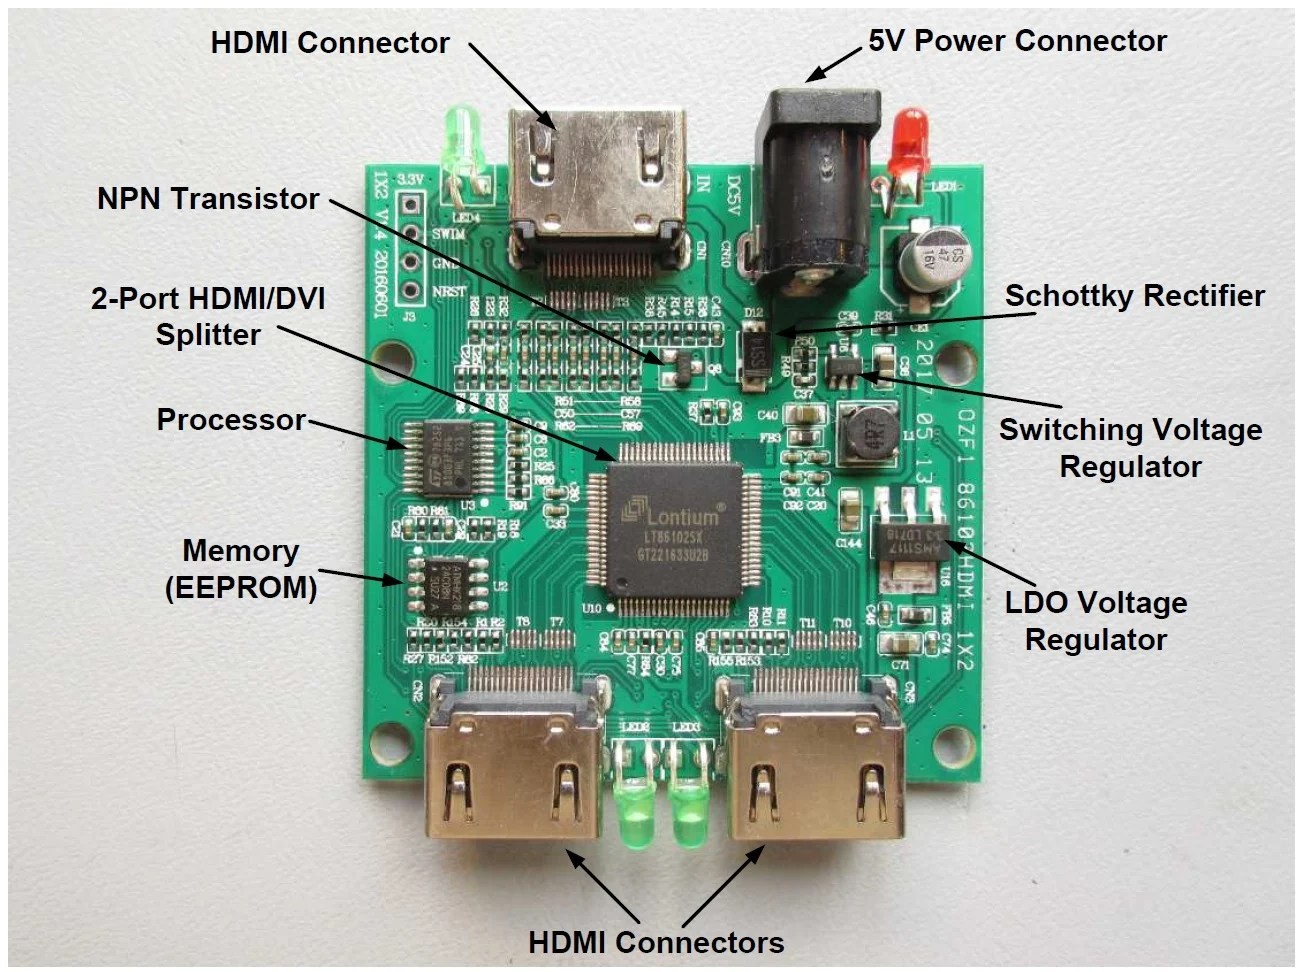 The Designer Of The Circuit Claims The Transistor Connected To The